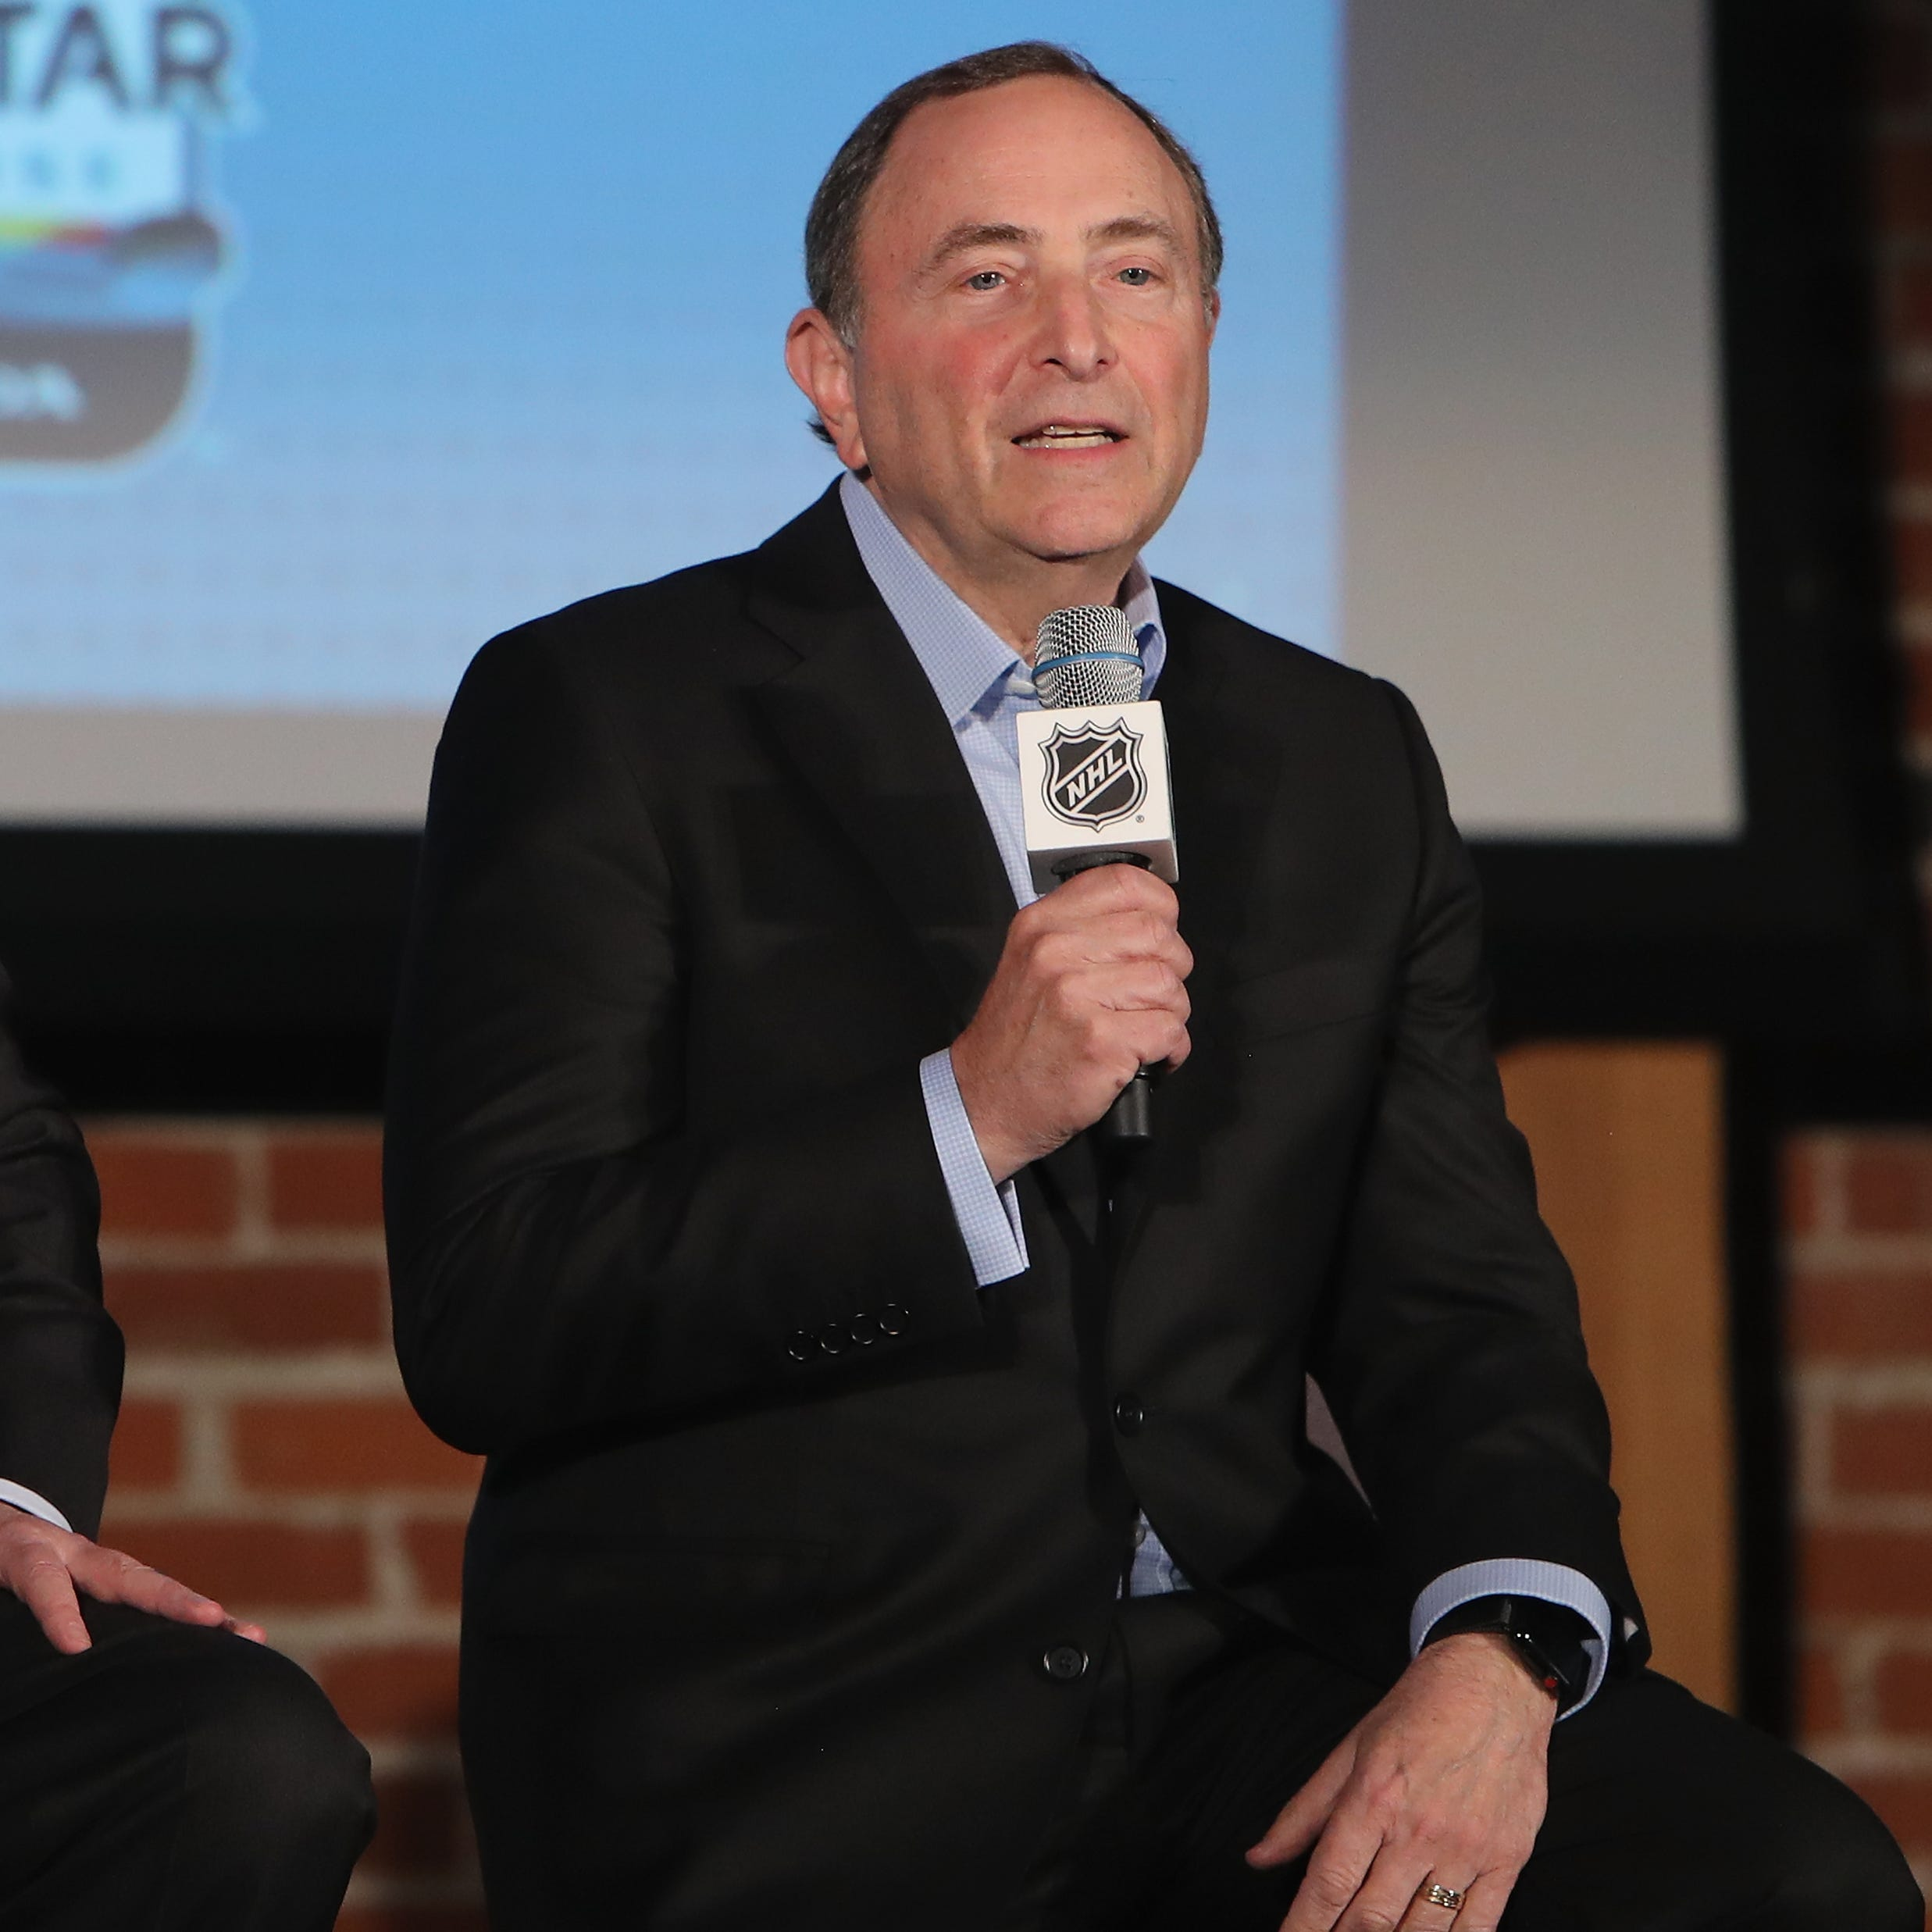 Friday's NHL: Bettman says CBA talks on target